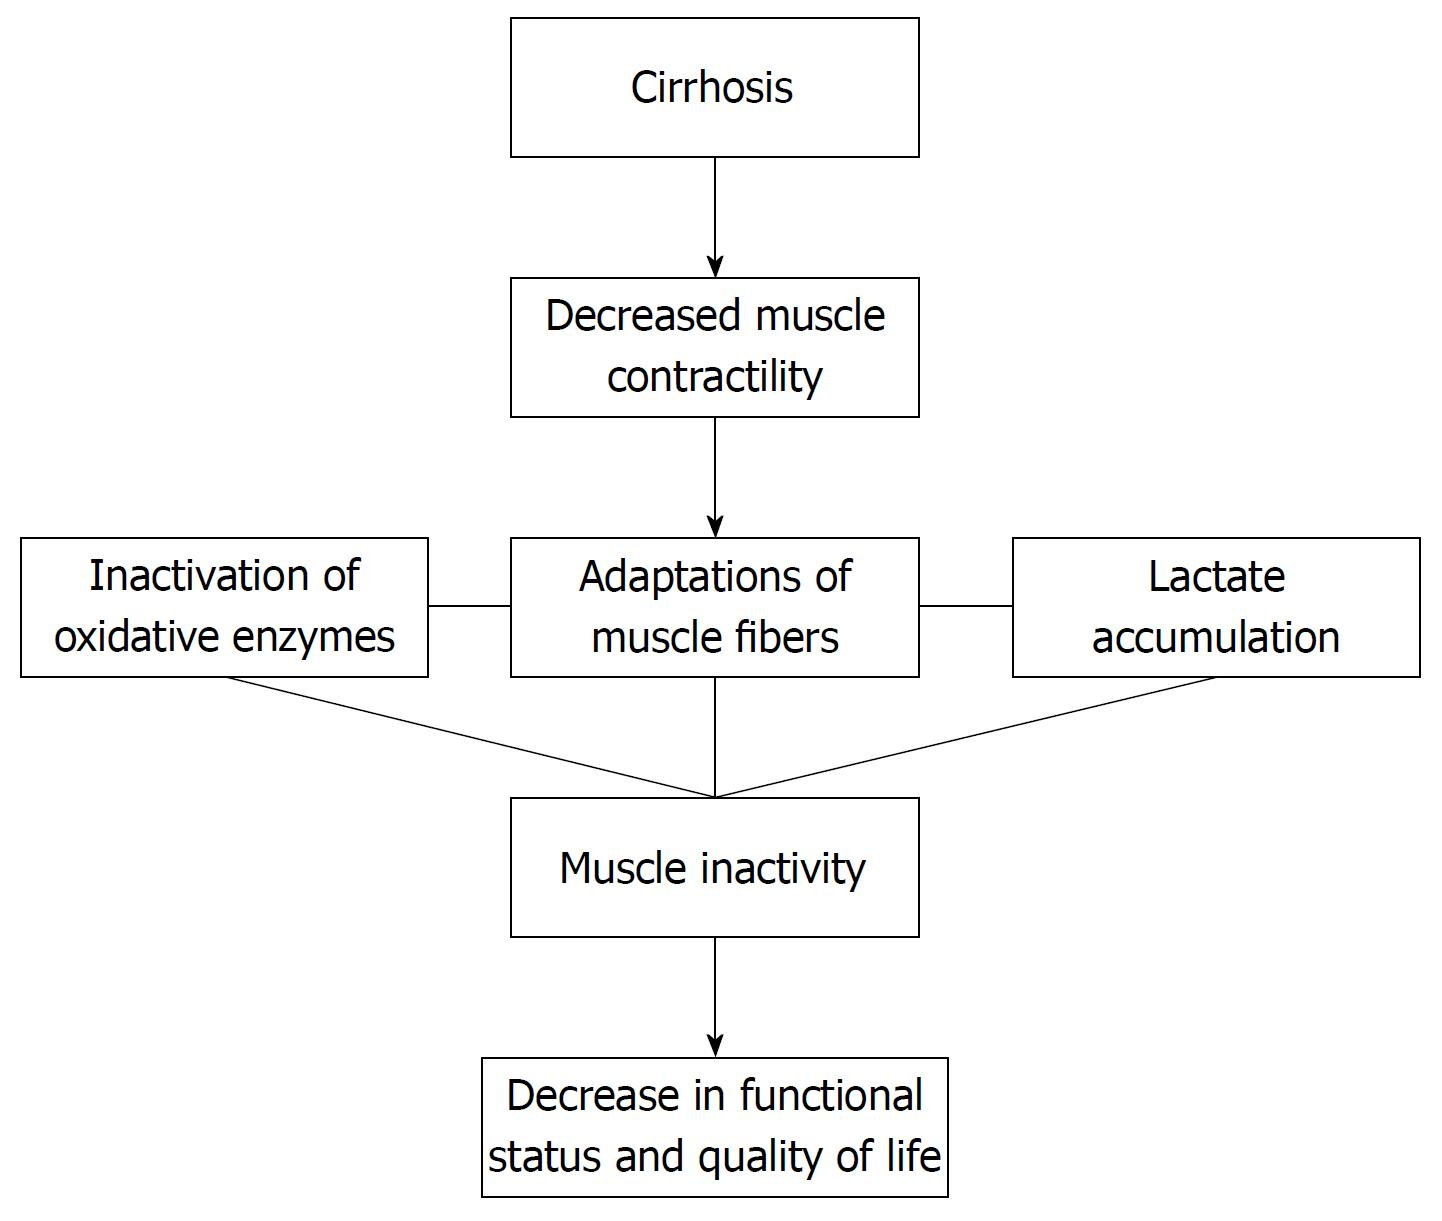 hight resolution of figure 1 flow chart demonstrating the consequences of cirrhosis regarding muscular adaptation and functional repercussions 134